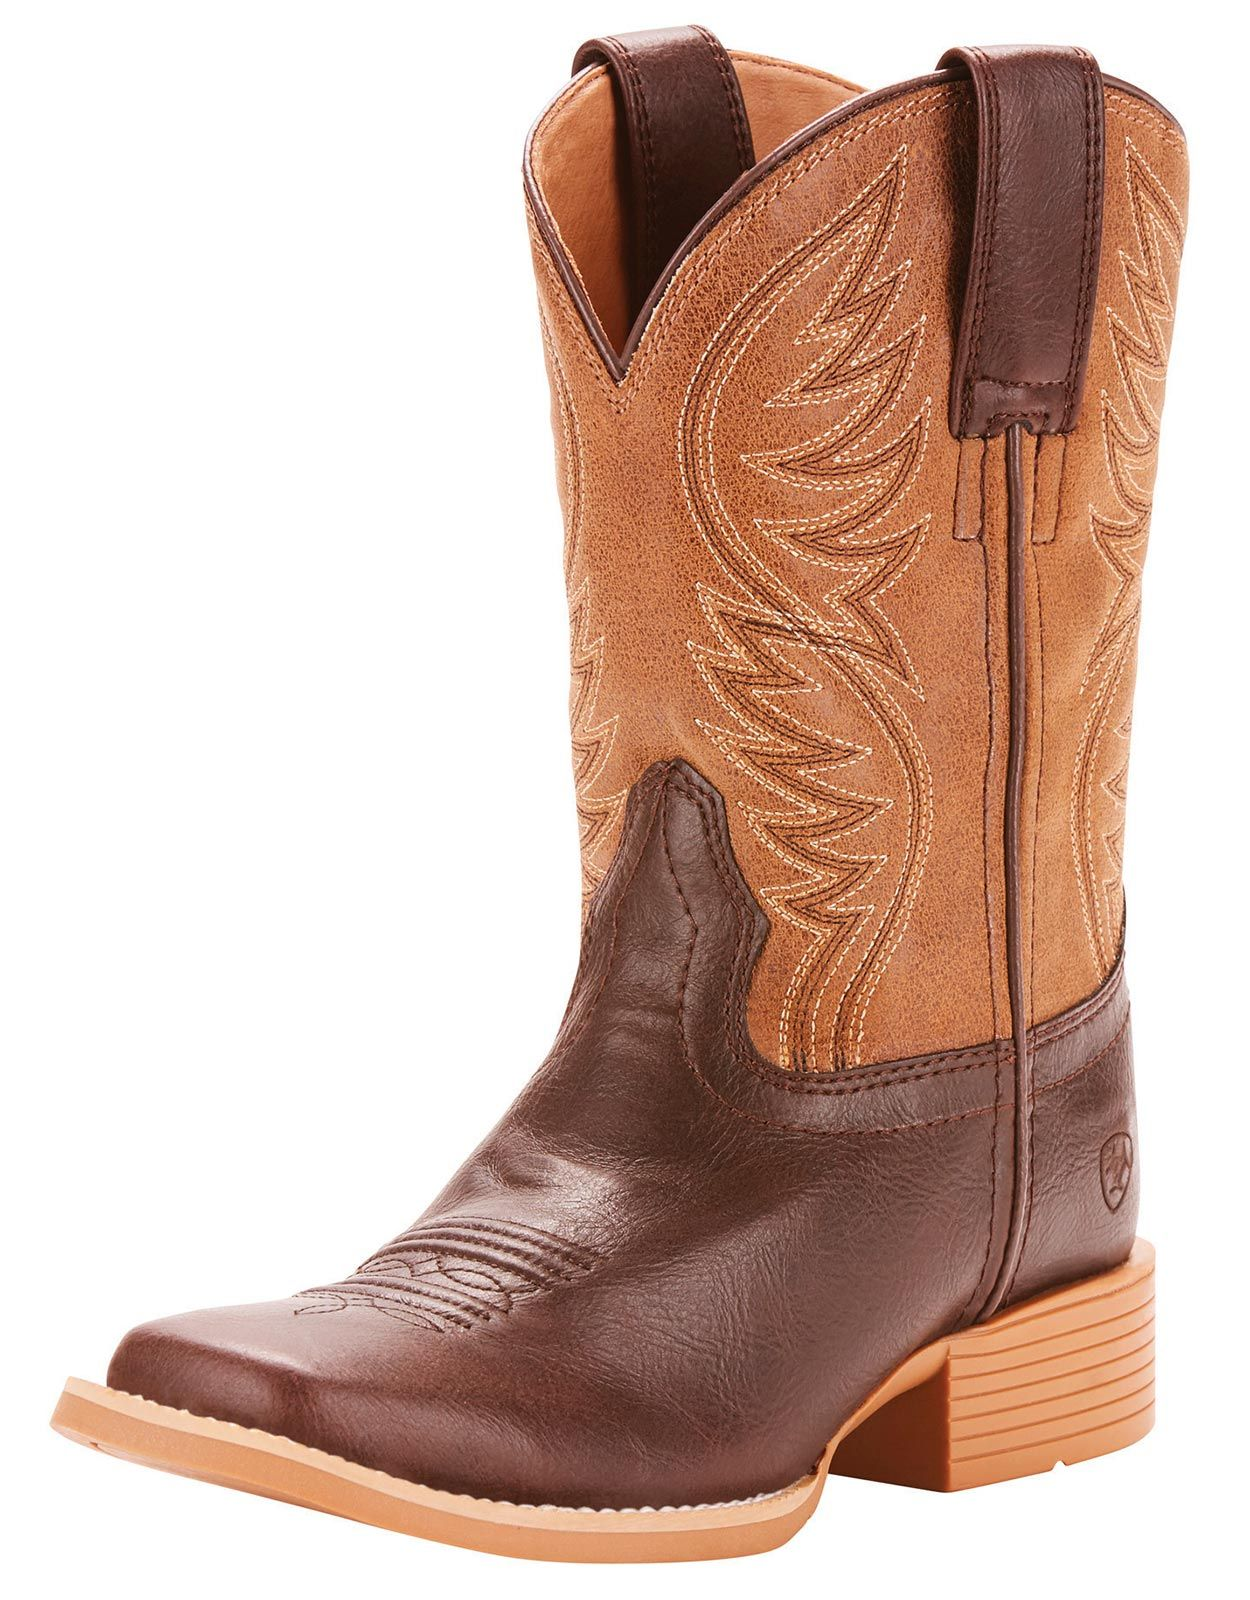 Ariat Youth Brumby 8